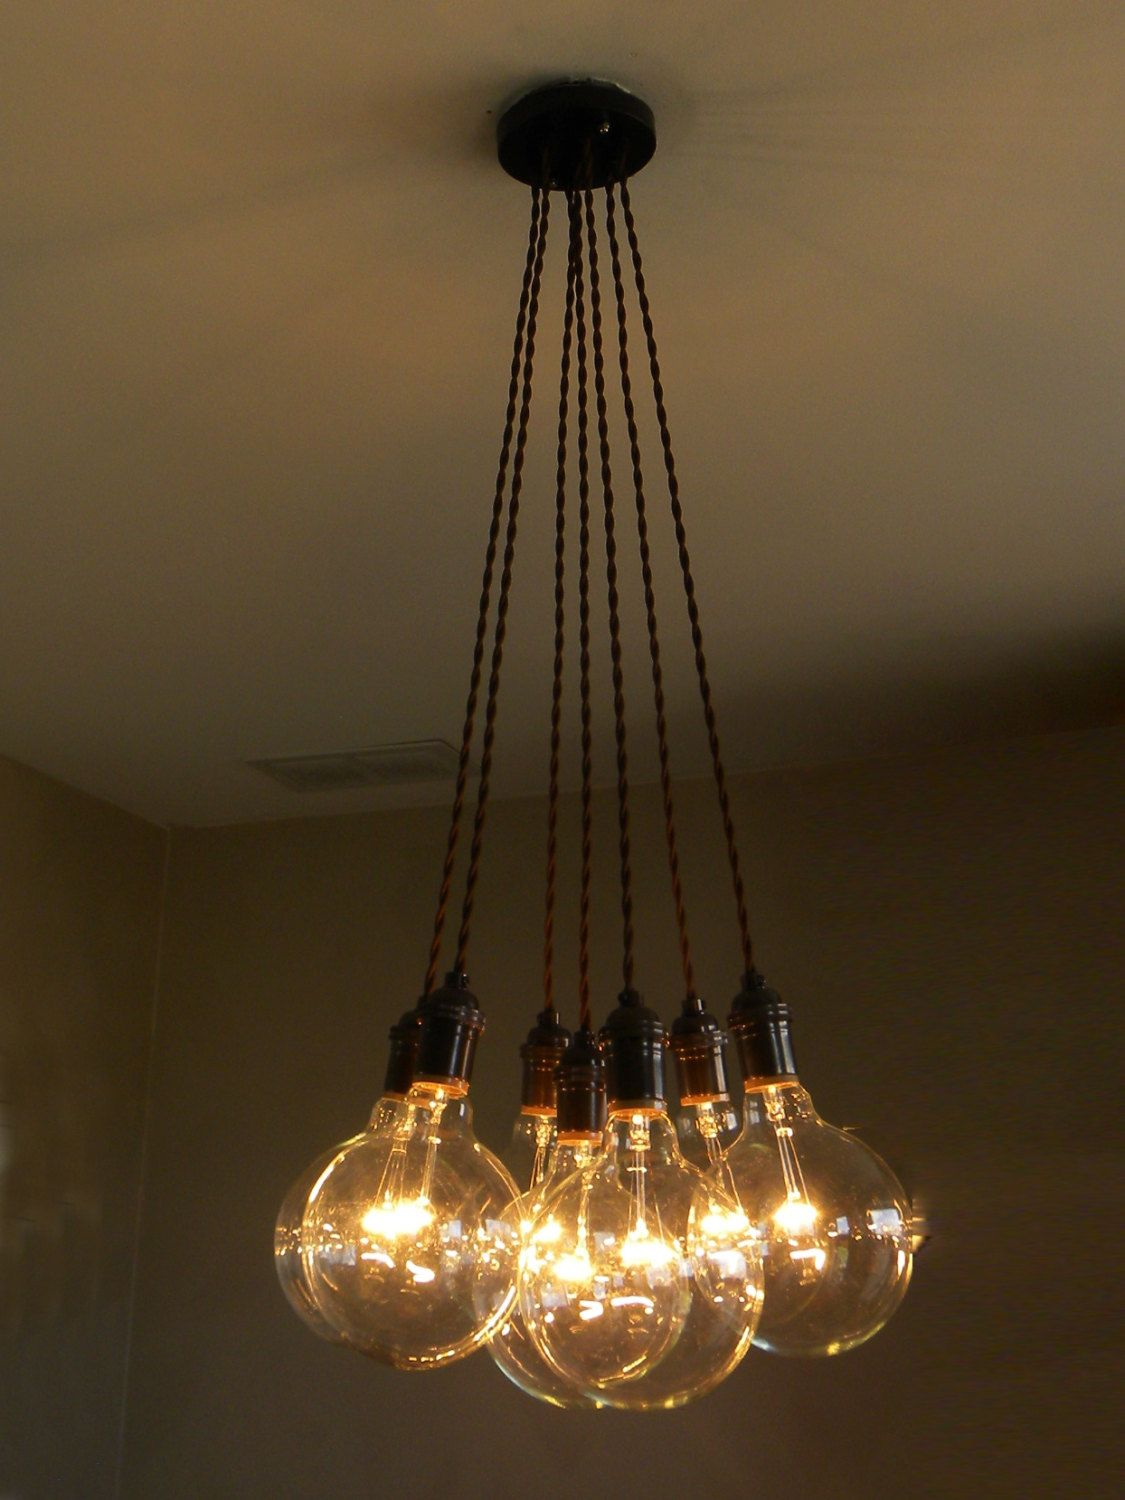 Exceptionnel 7 Cluster Standard Antique Globe Chandelier Glass Edison Bulbs Modern Pendant  Lighting Industrial Pendant Lamp Hanging Ceiling FIxture By HangoutLighting  On ...